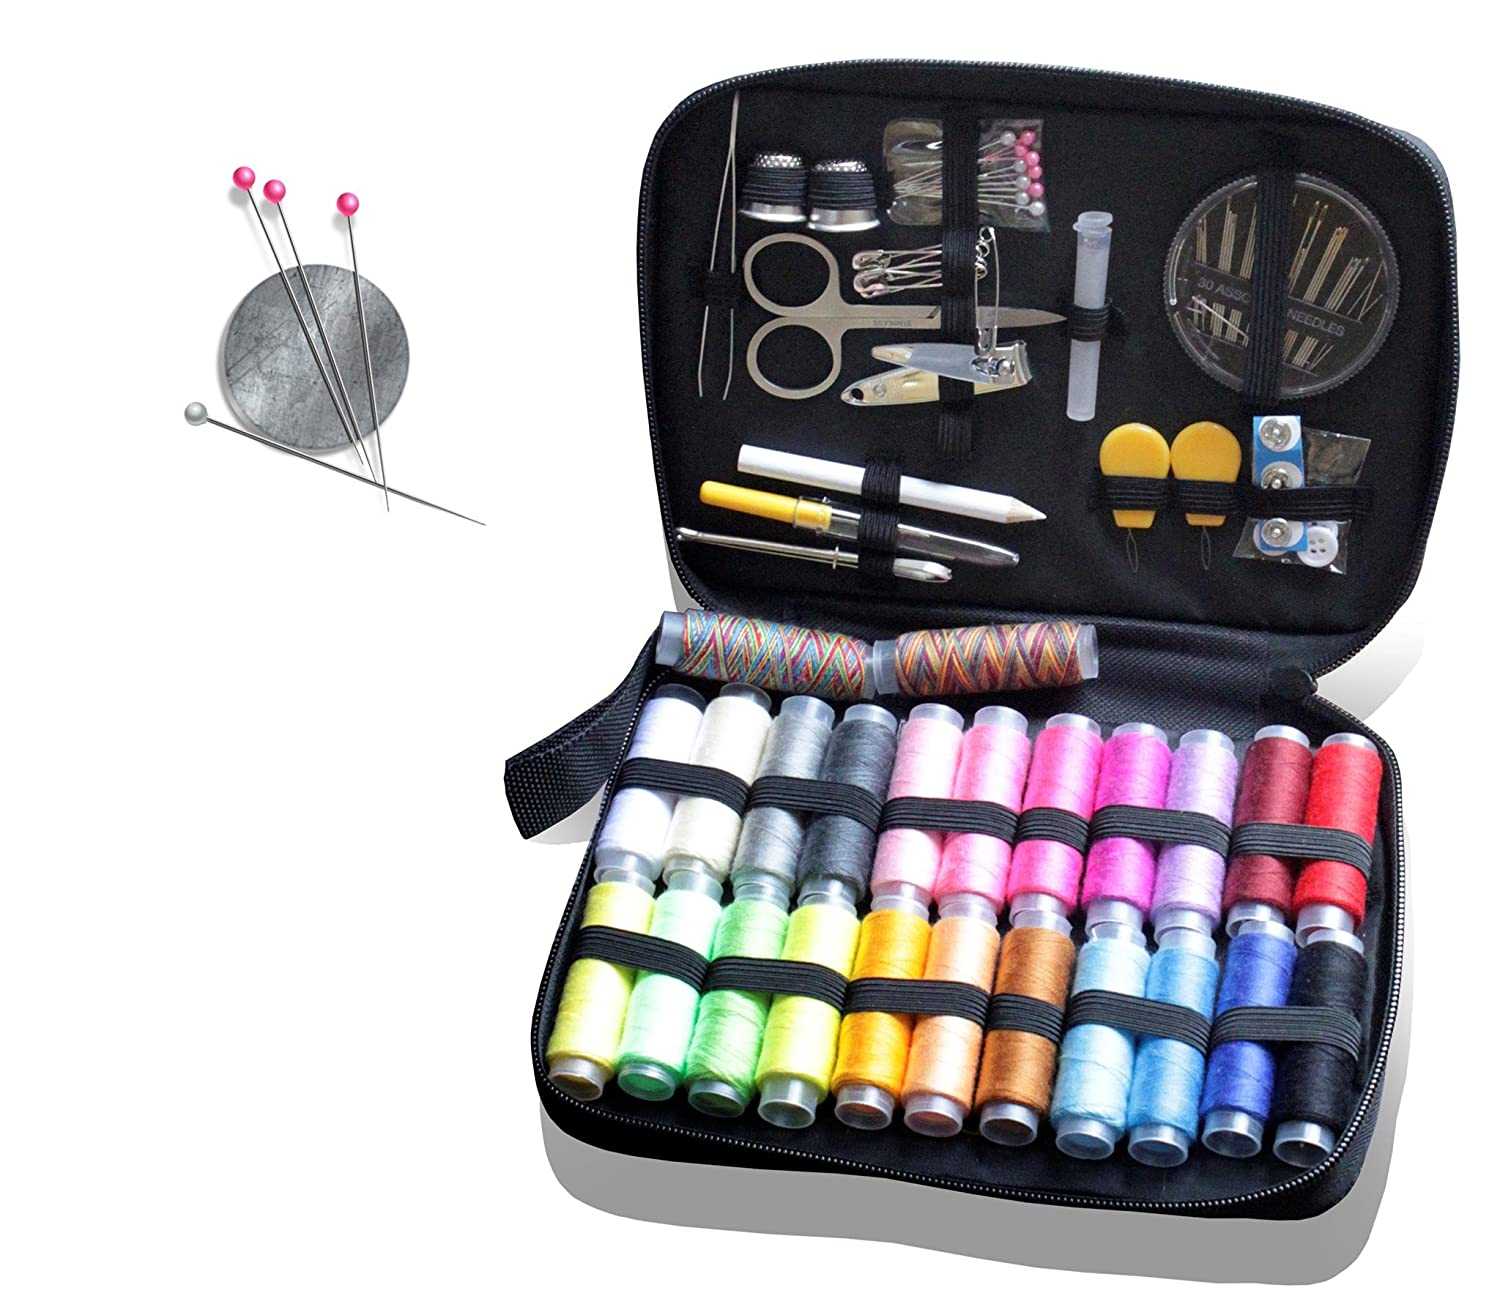 Premium Sewing Kit by Ambears& D - 24 Spools of Thread, Best Mini Repair Kit for Travellers and Beginners - Sewing Set for Home and Office, Clothes Fix and Repair - Best Sewing Supplies 4337015563